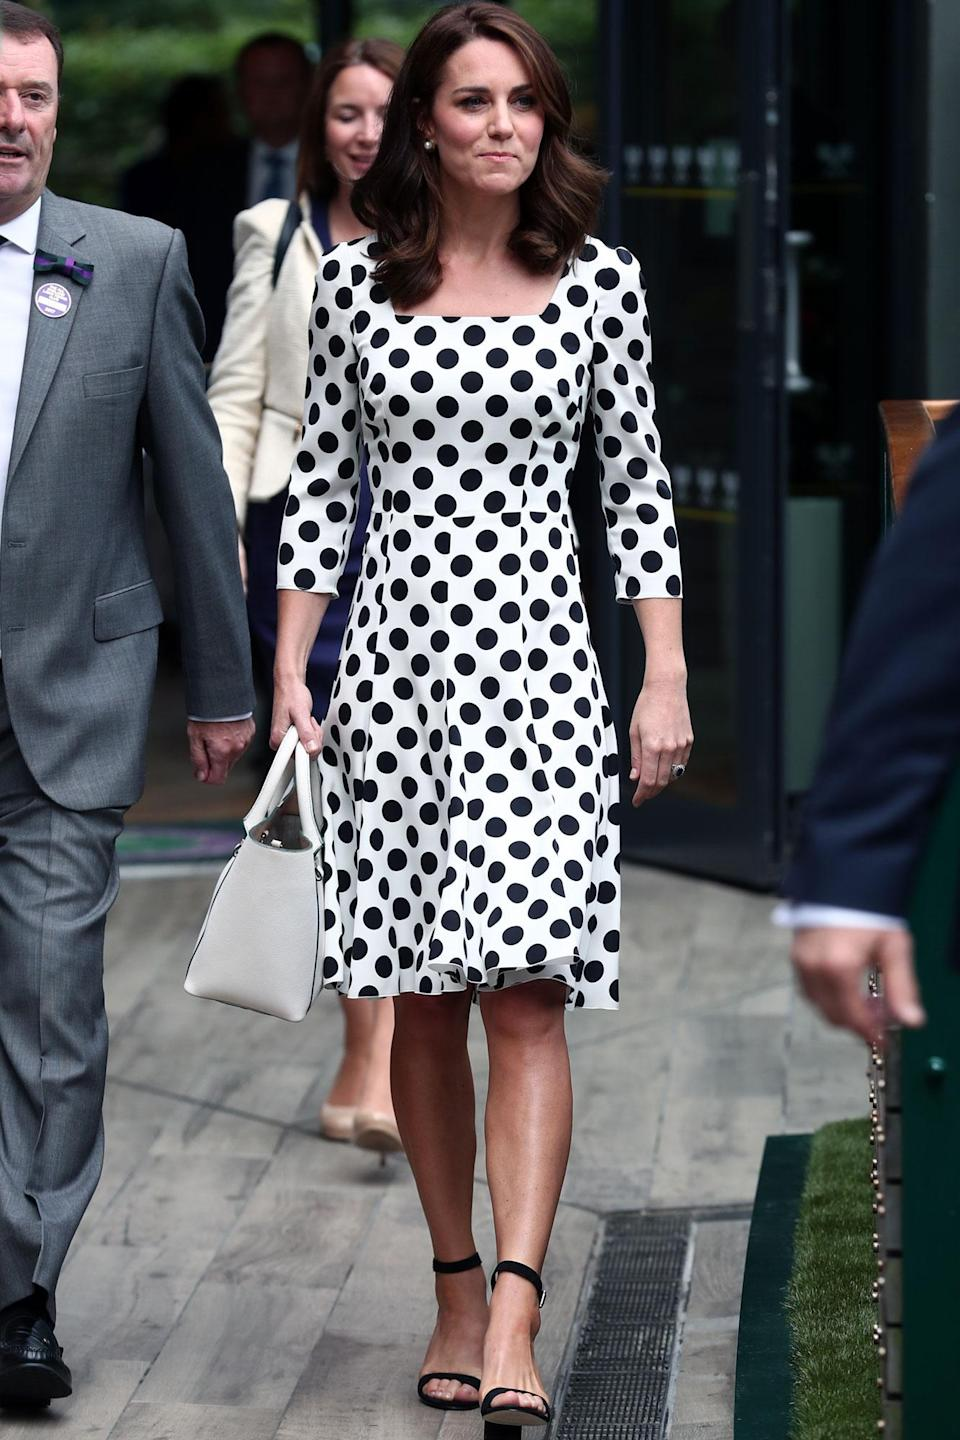 <p>The royal mom wore a <span>polka dot Dolce & Gabbana dress</span> as she headed to the iconic sports arena in London before the first match of the day. <strong>Get the look! </strong>Adrianna Papell Short-Sleeve Polka Dot Dress, $120; <span>bloomingdales.com</span></p>